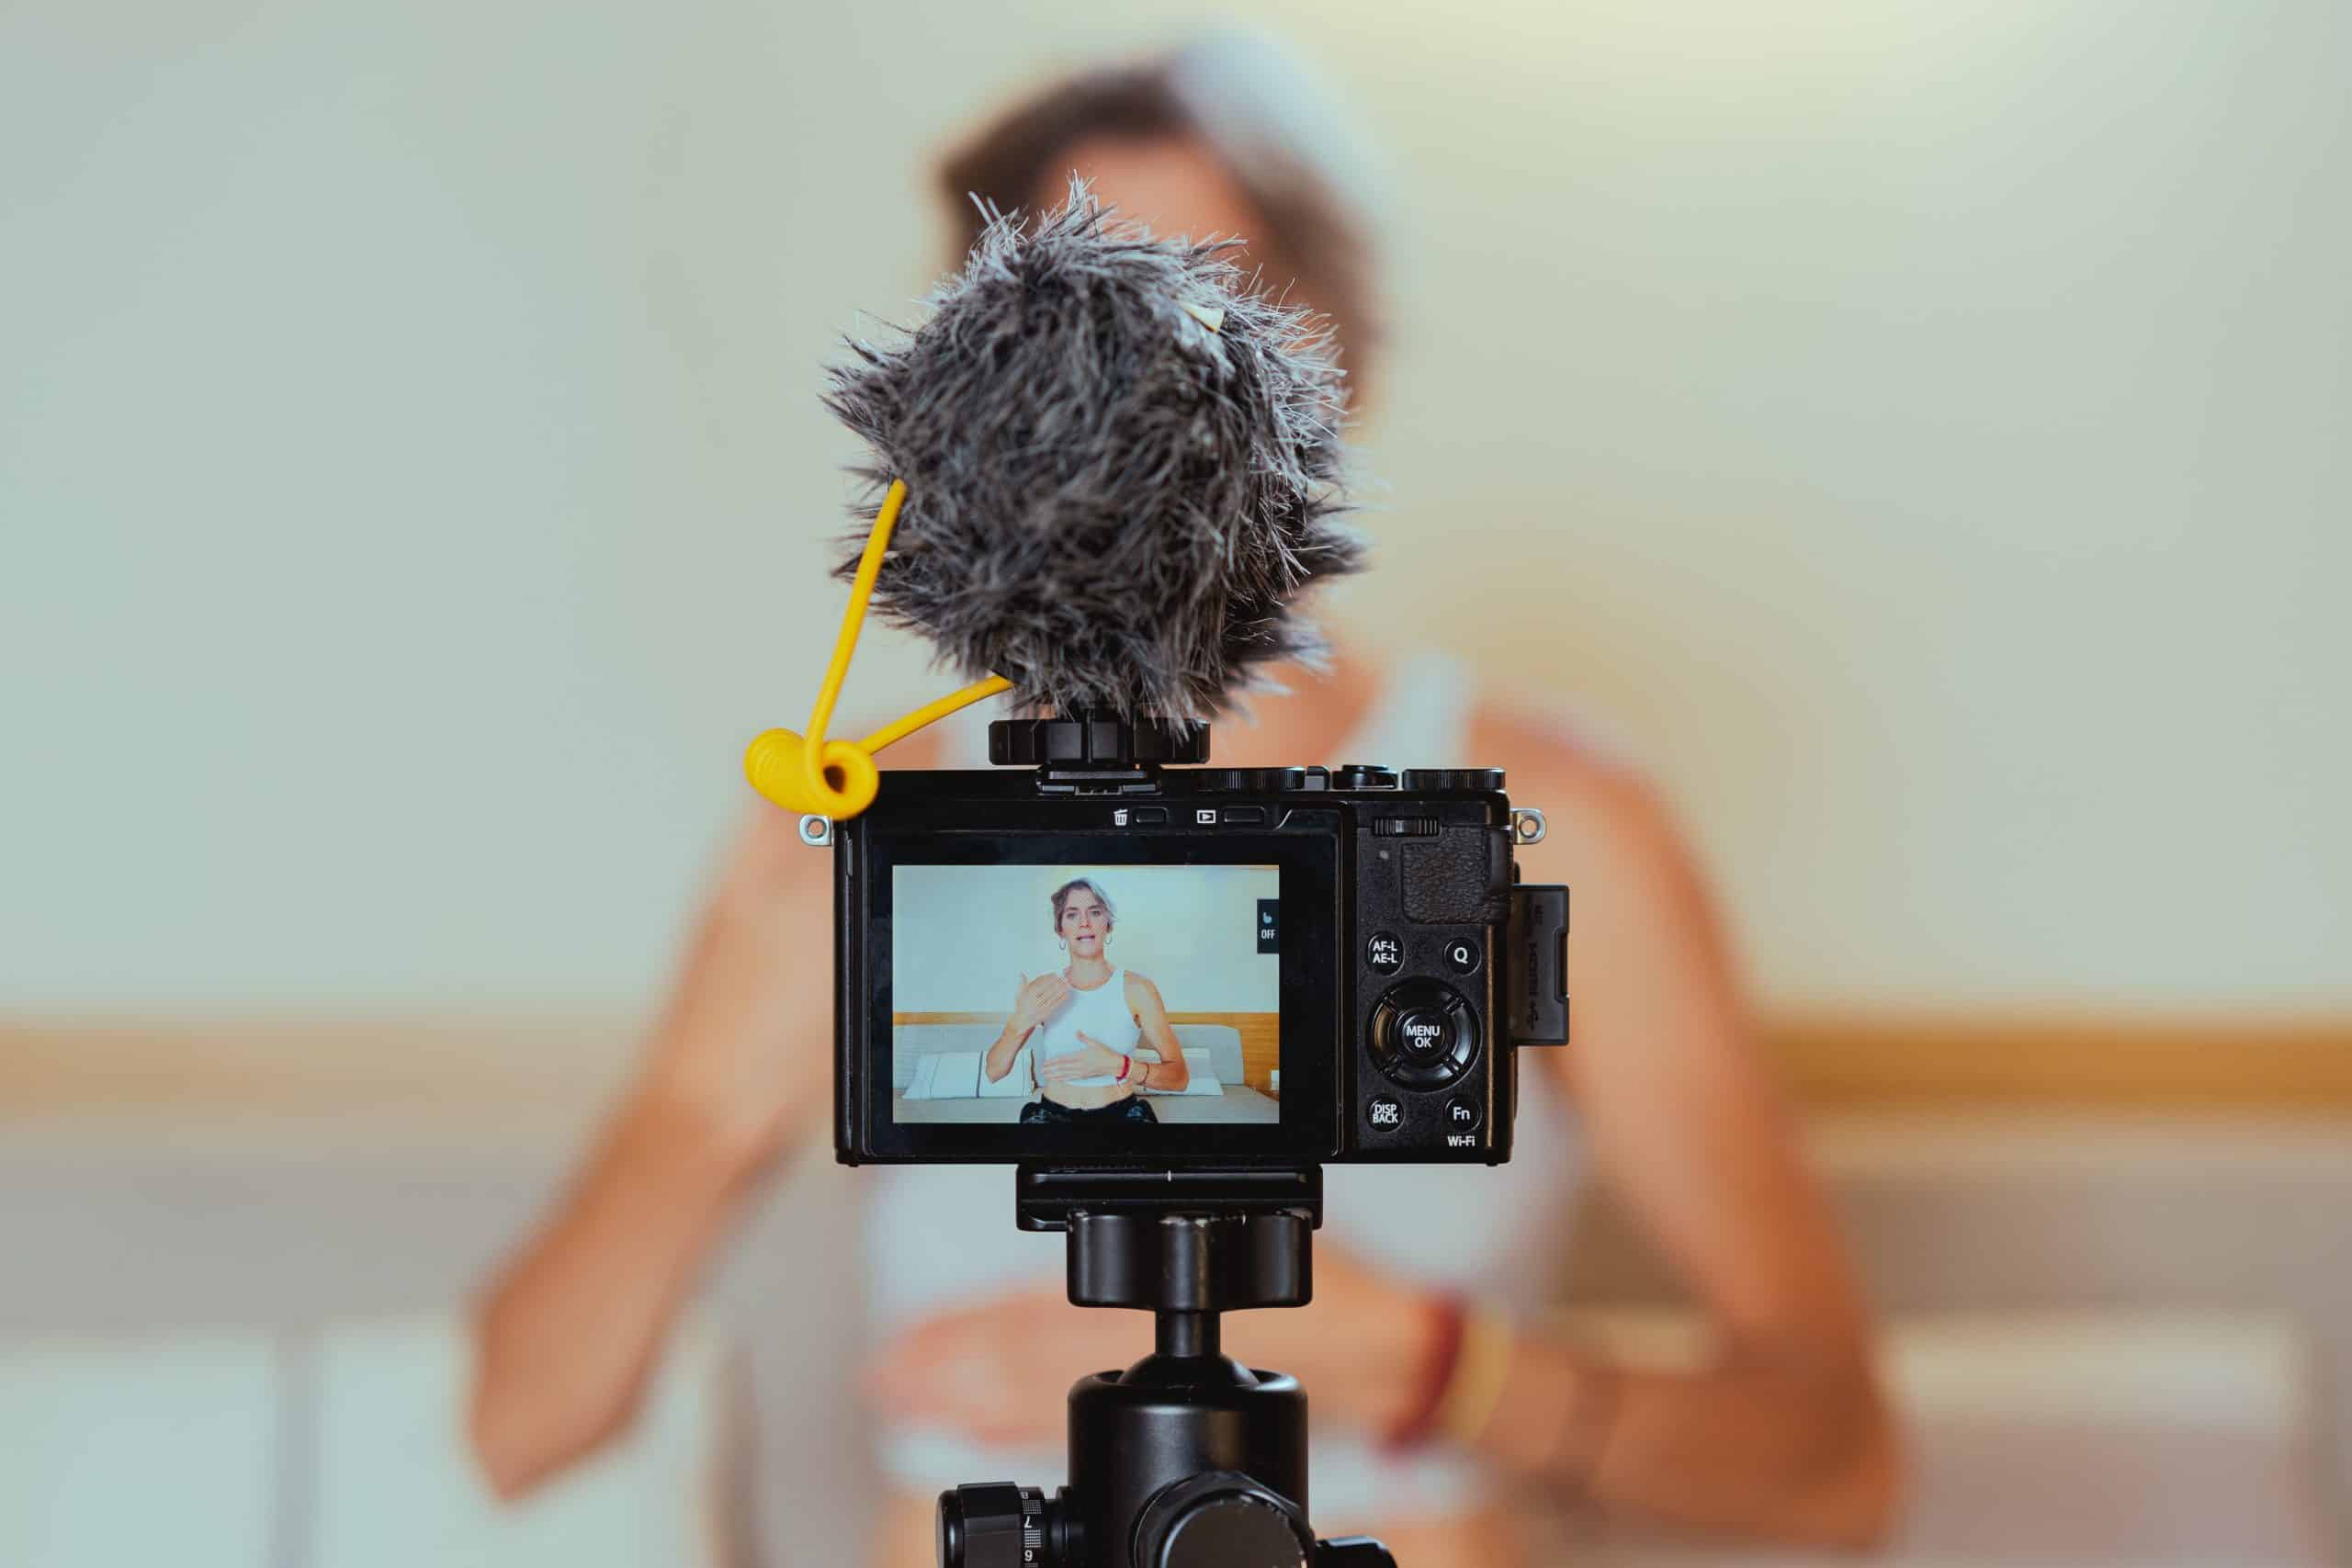 Adding music to social media video content